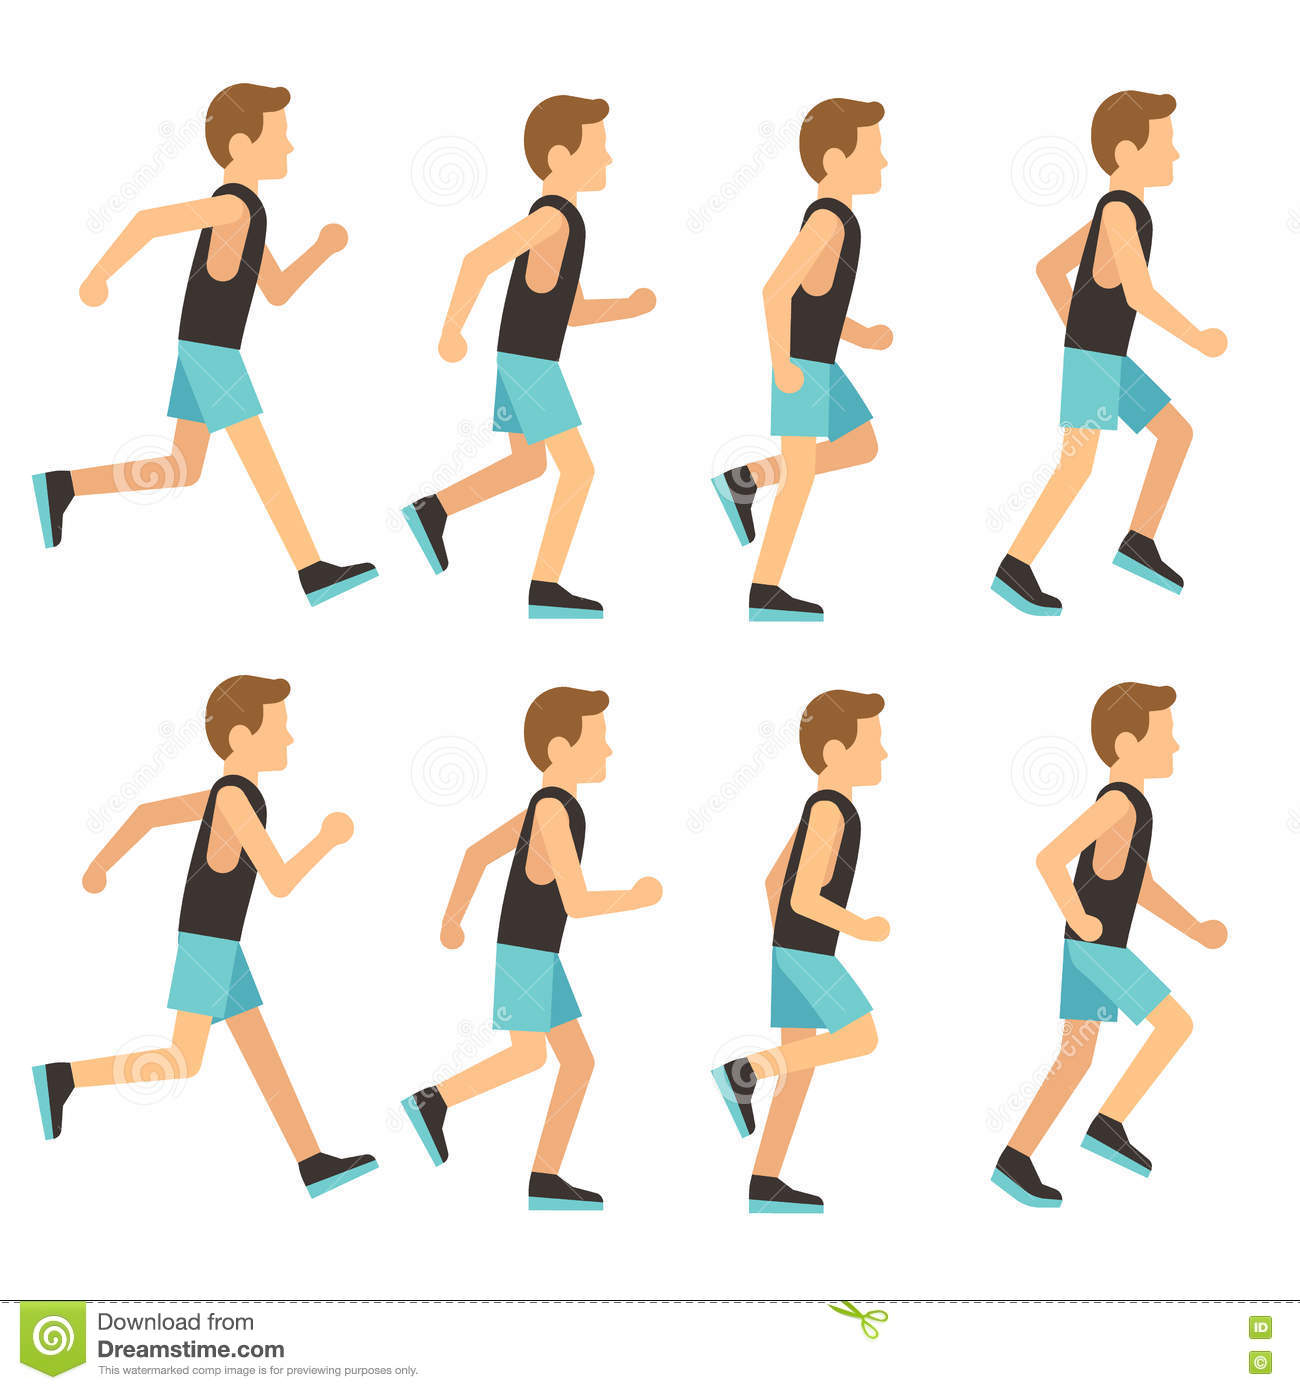 Running tracksuit in frame illustration athletic man sequence animation sprite vector vtwqtrE